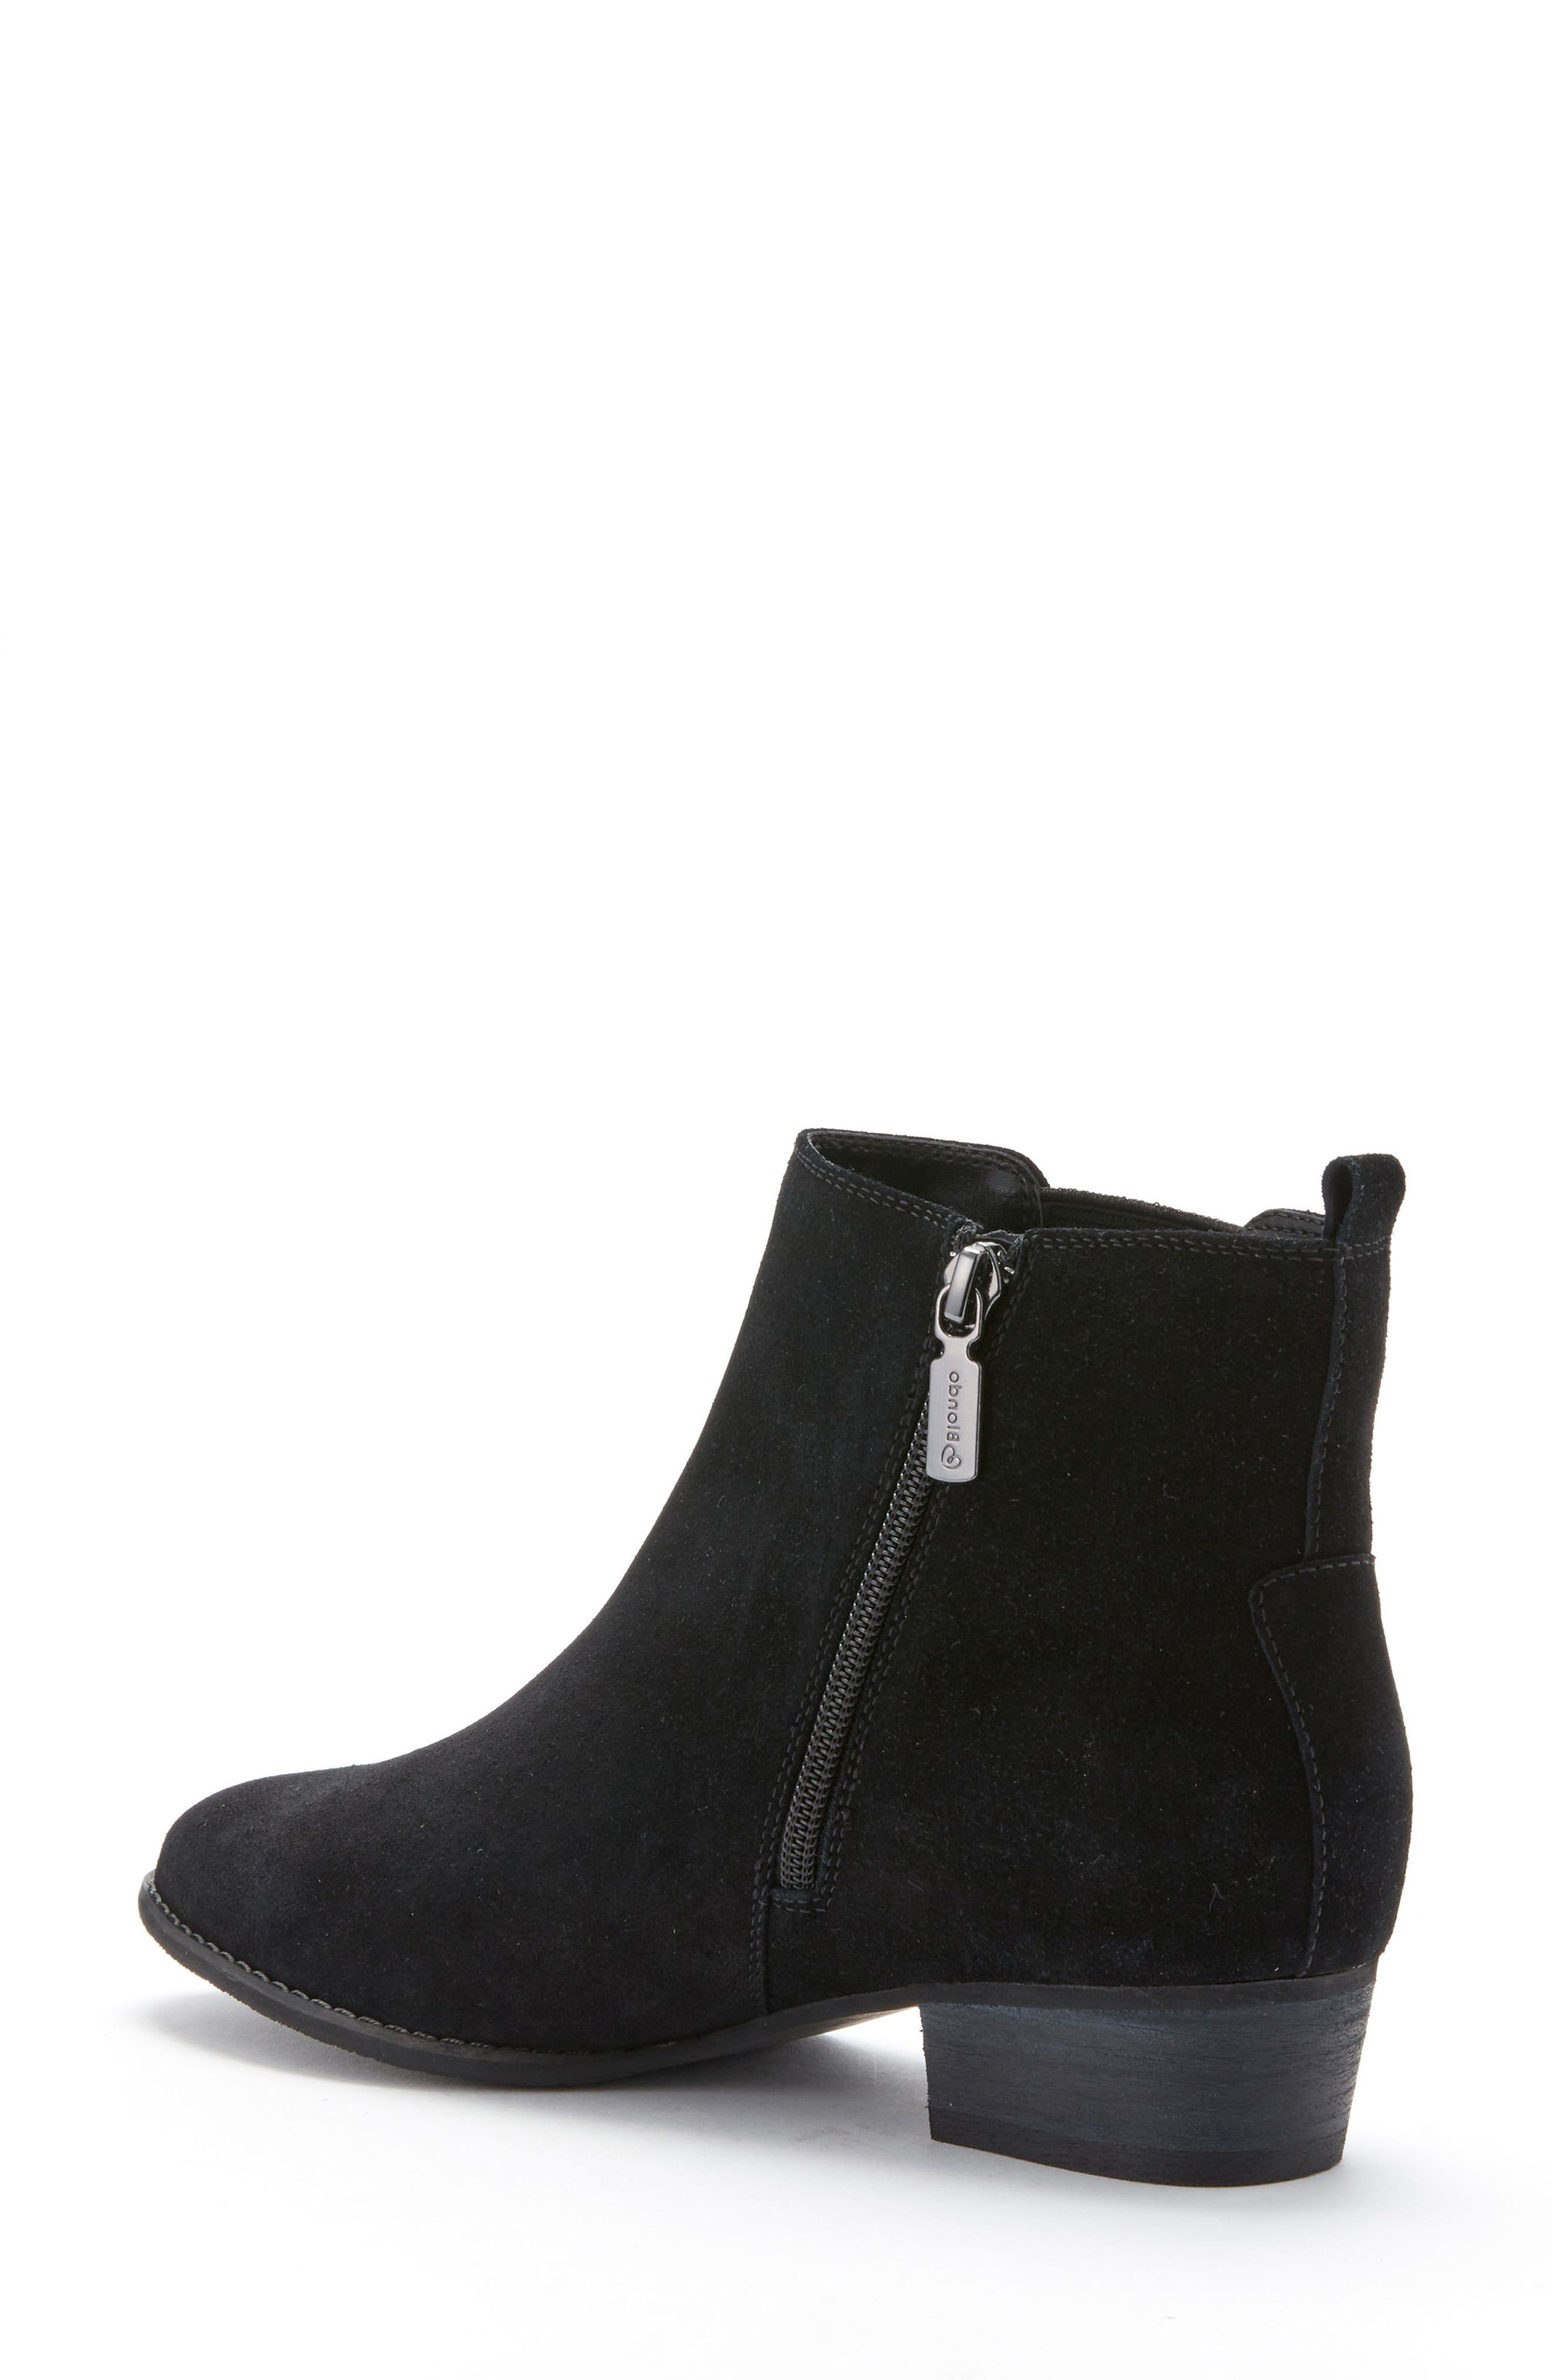 Loxx Waterproof Bootie,                             Alternate thumbnail 2, color,                             006